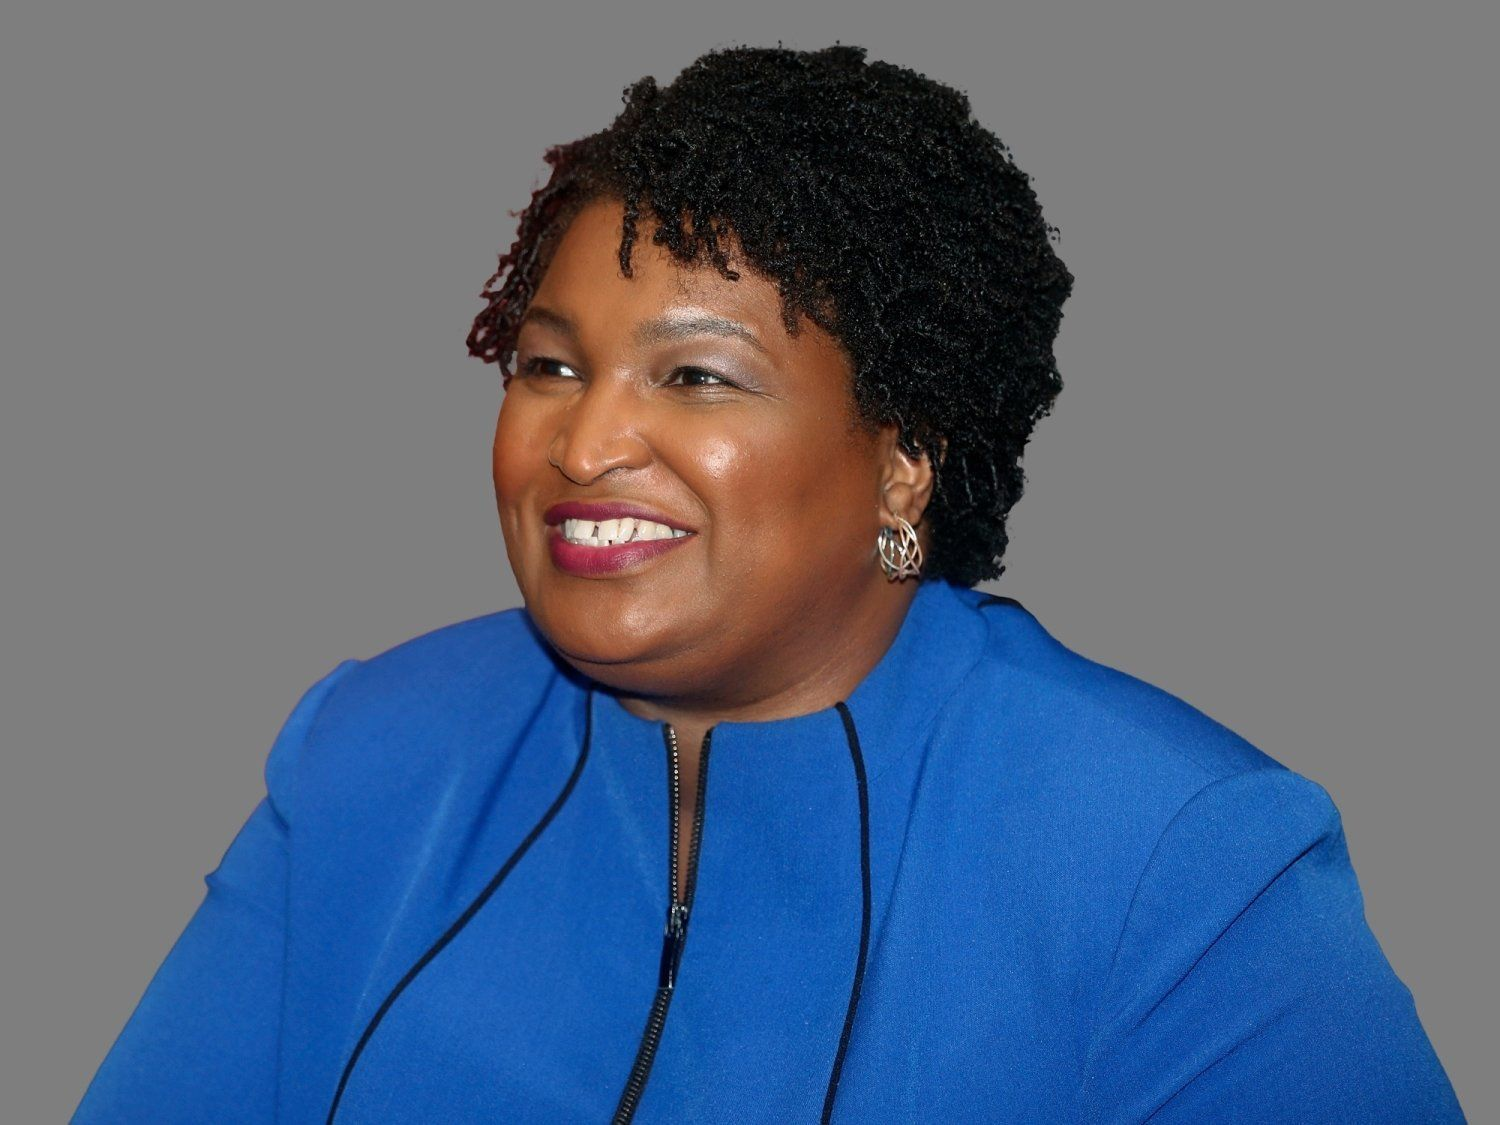 Stacey Abrams Campaign Calls On Brian Kemp To Resign As Georgia's Election Chief